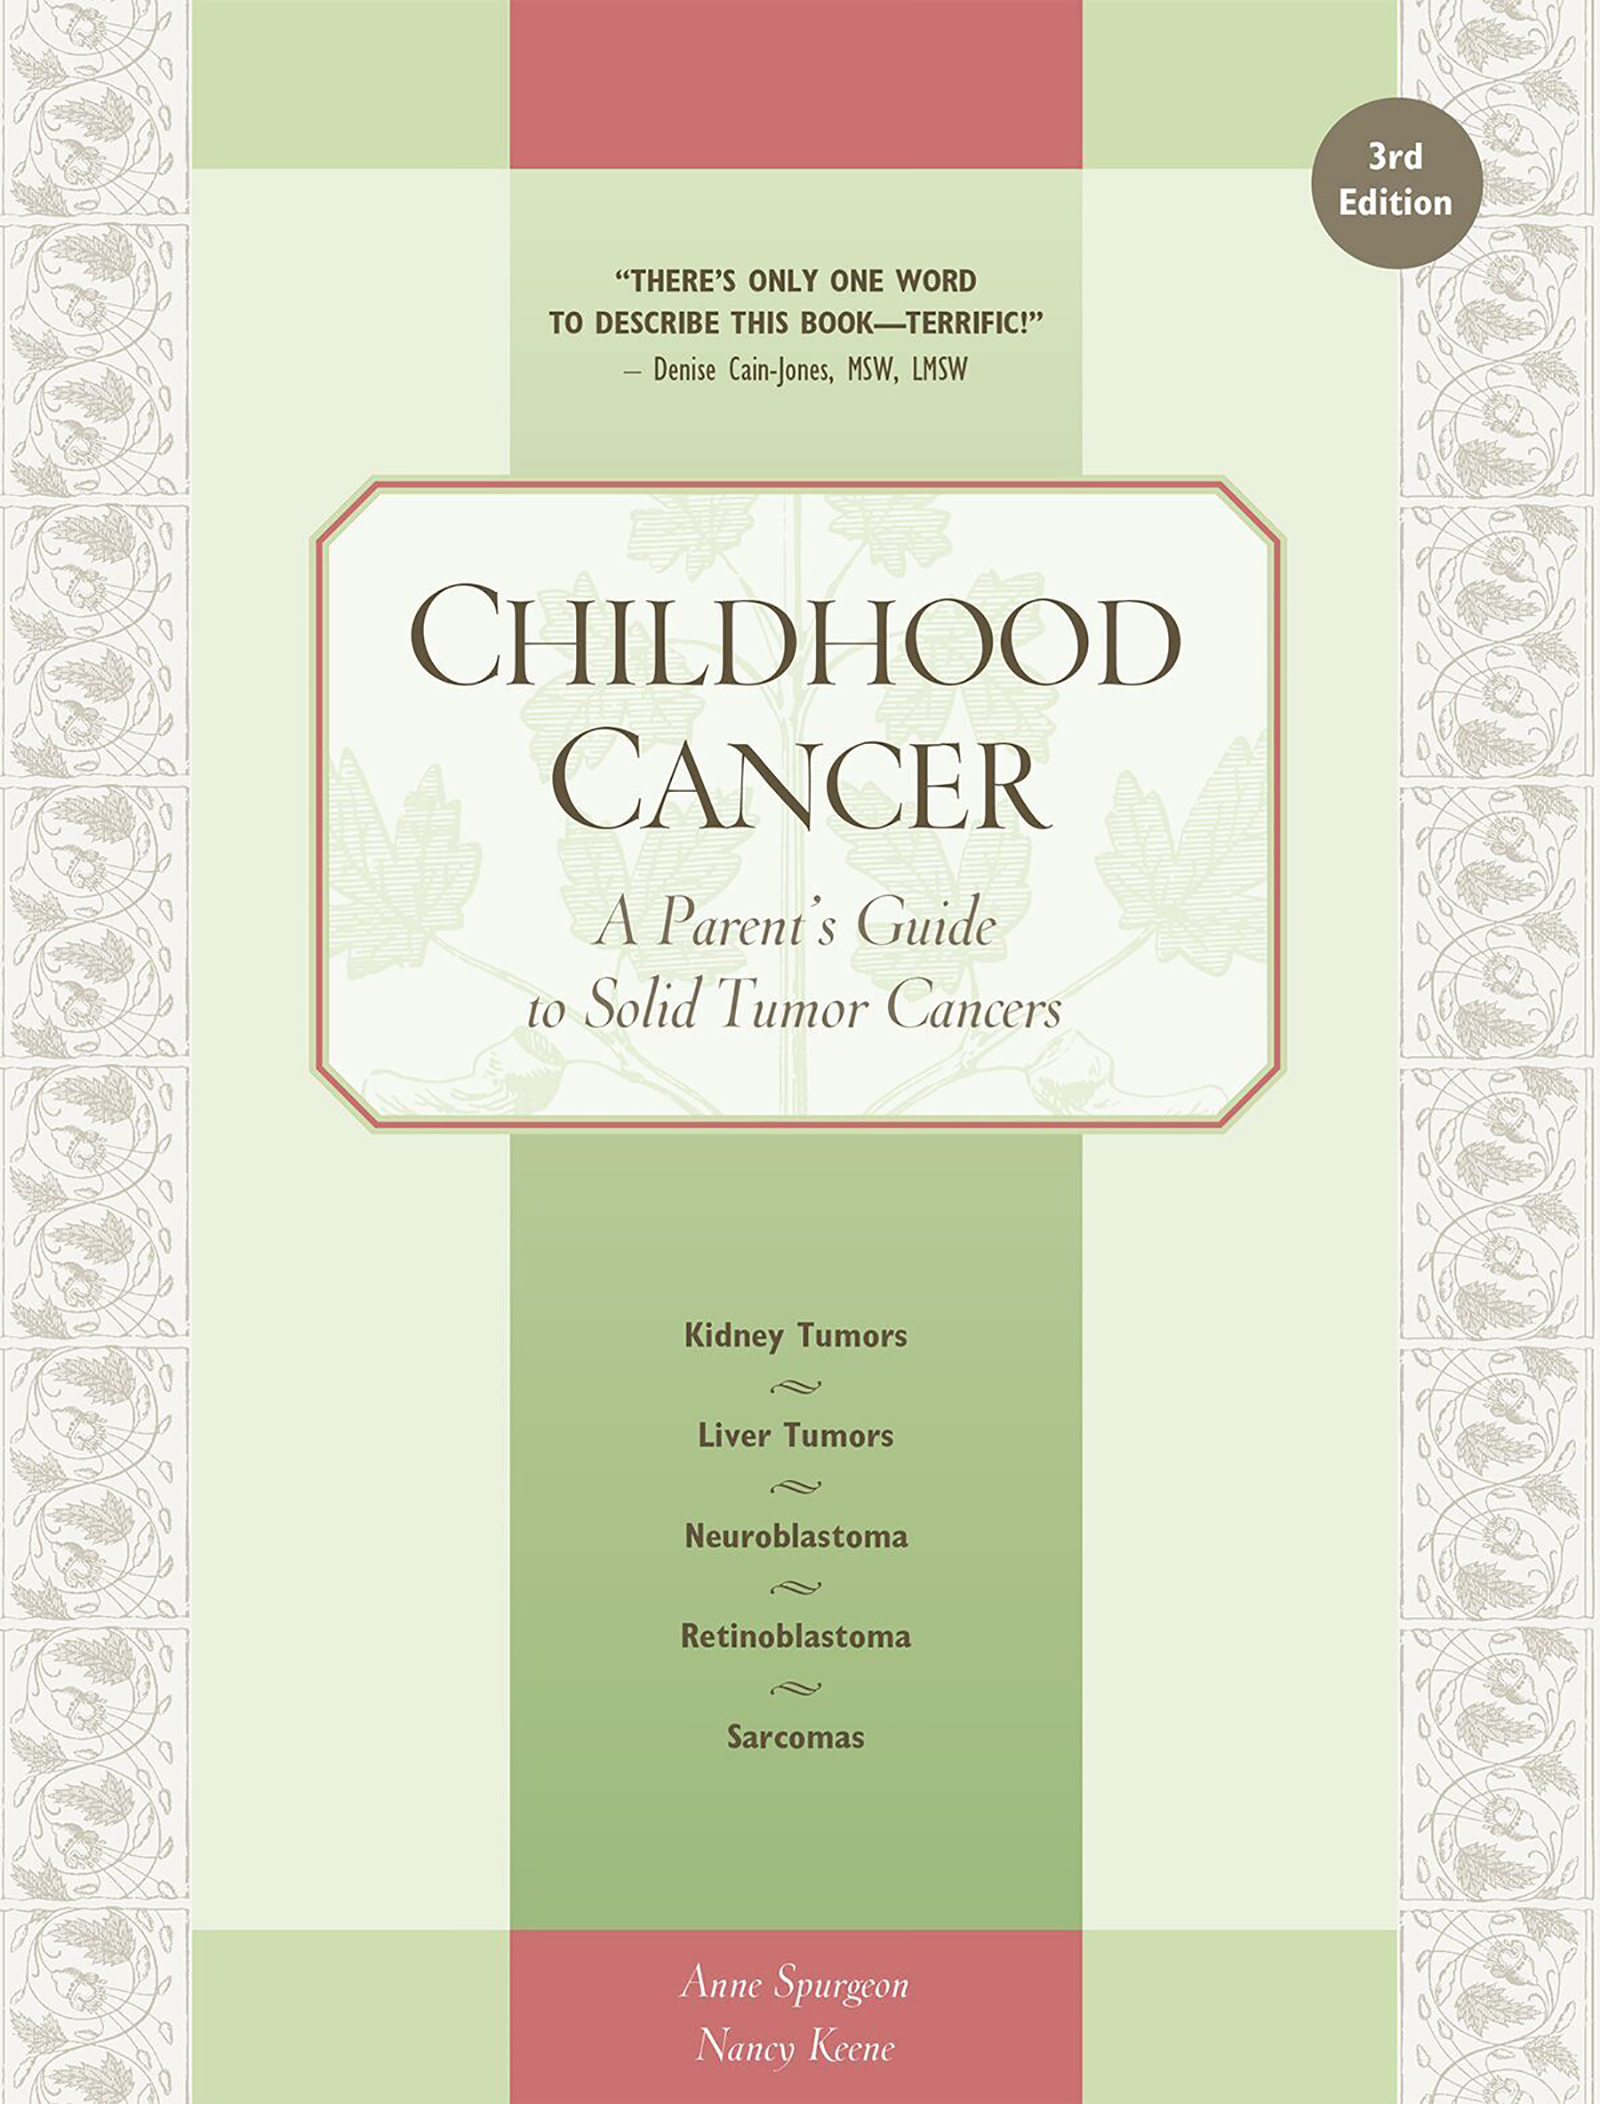 Childhood Cancer A Parent's Guide to Solid Tumor Cancers